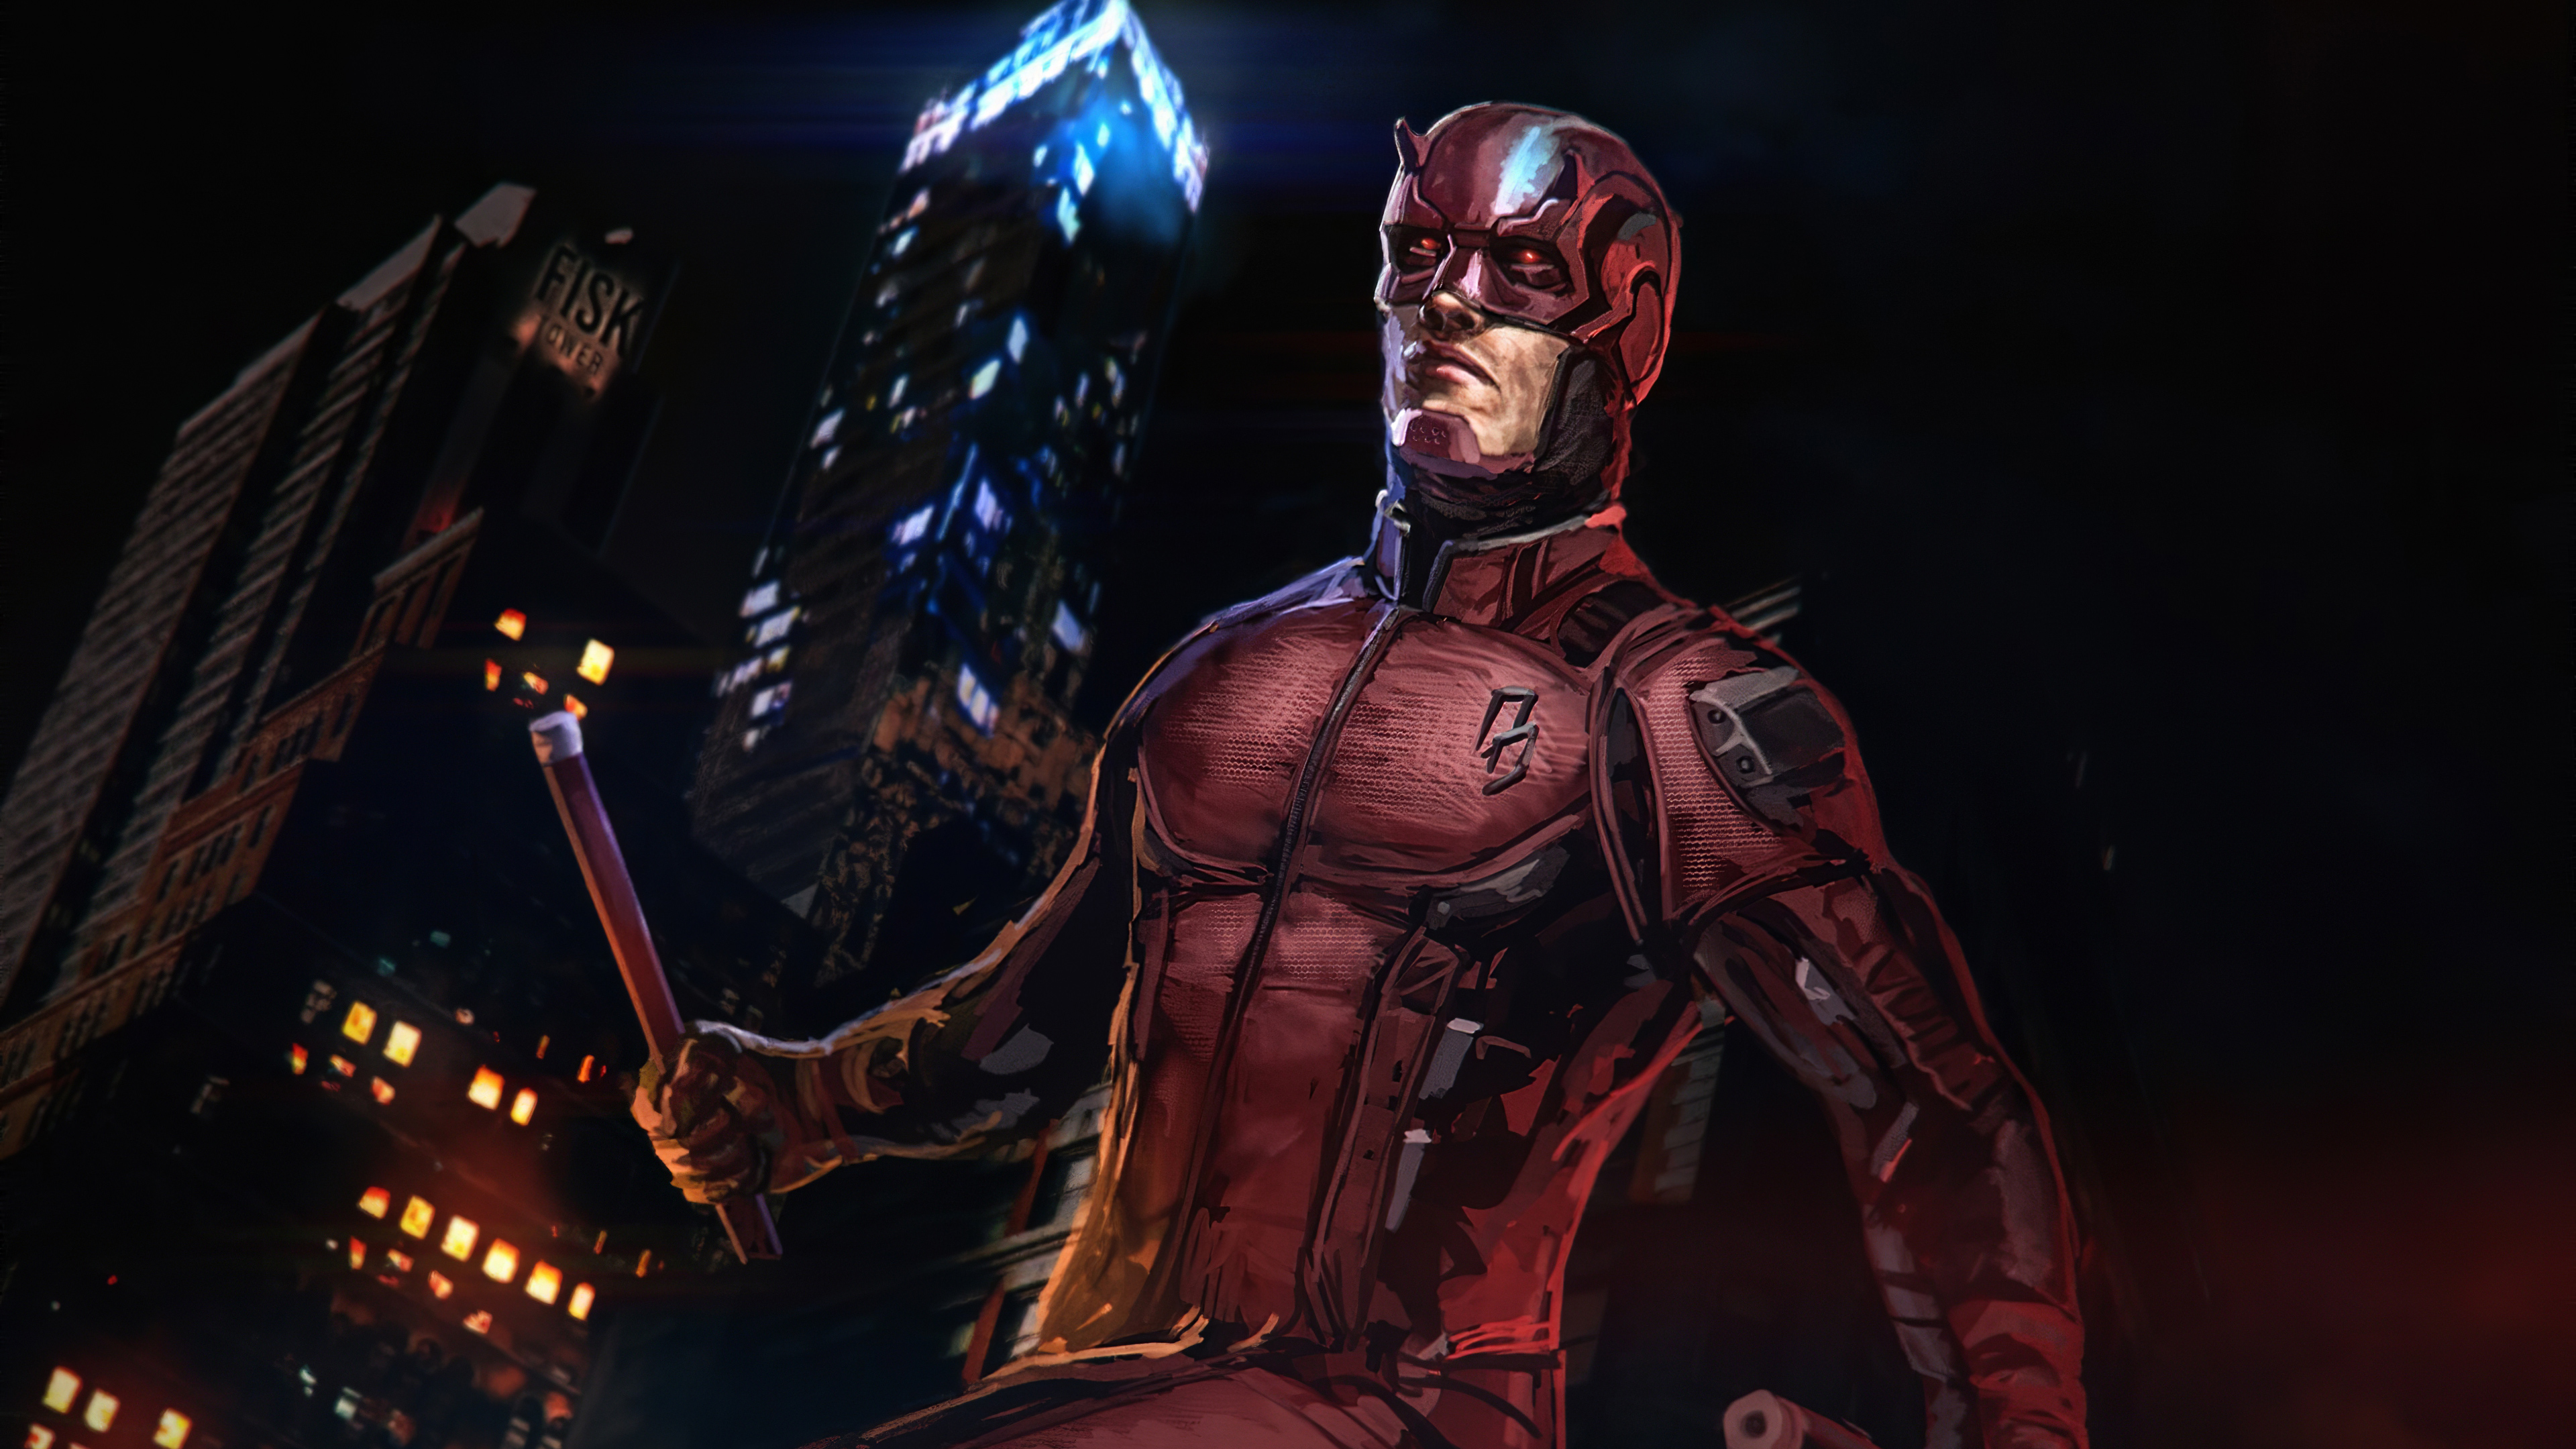 Daredevil 4k 2020, HD Superheroes, 4k Wallpapers, Images, Backgrounds, Photos and Pictures